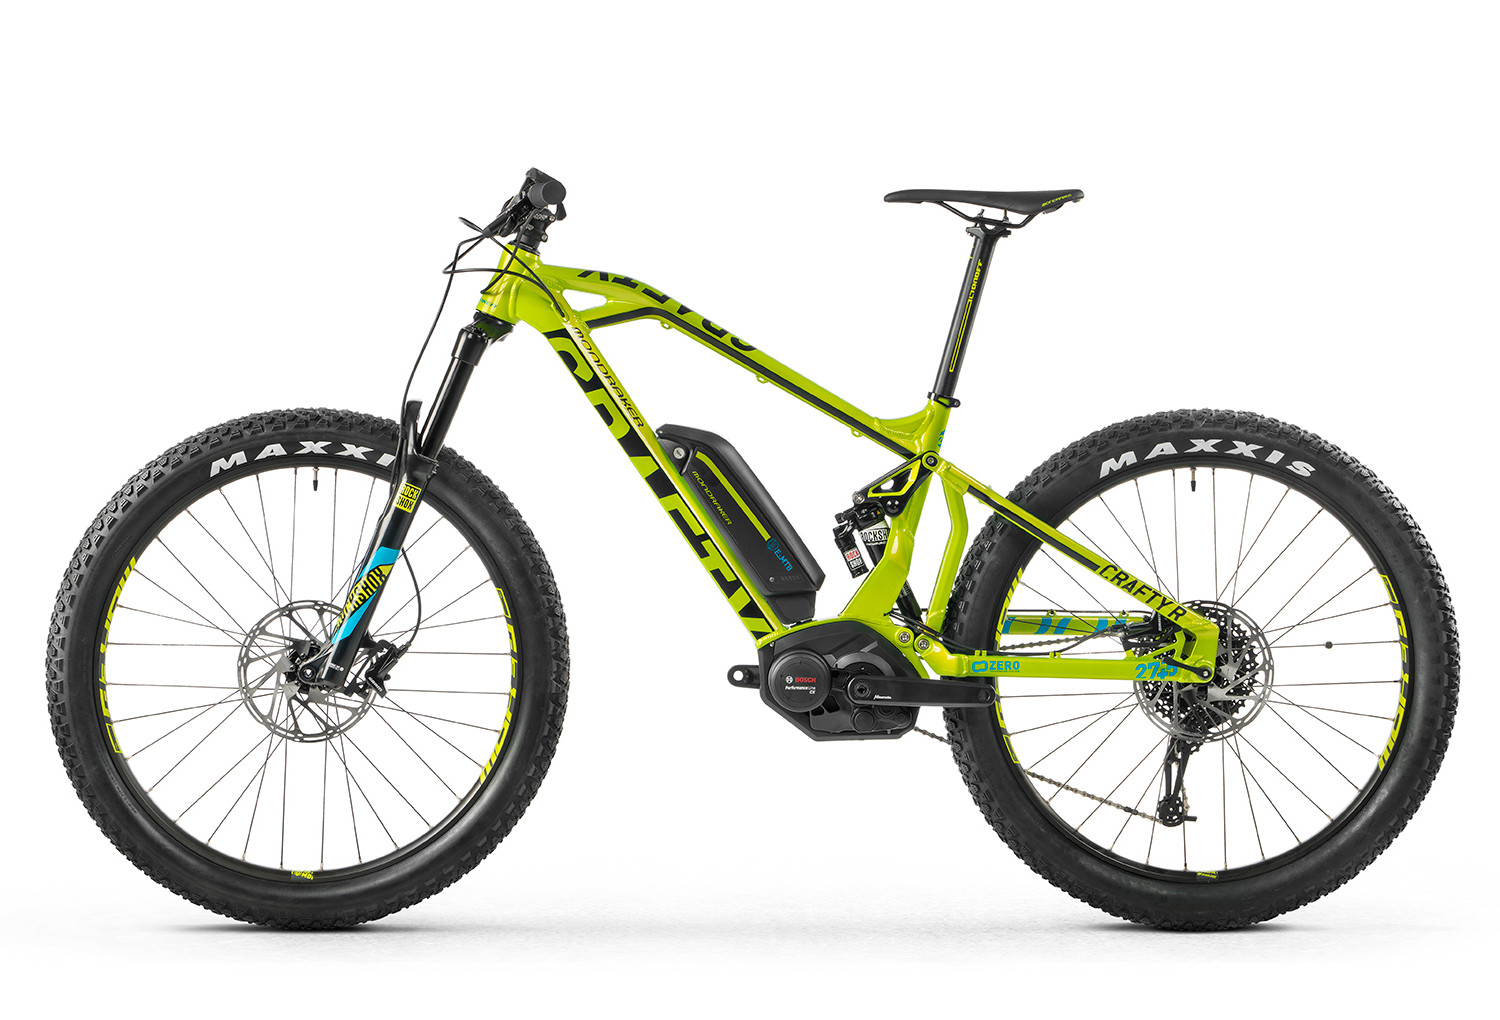 vtt electrique mondraker 2017 e crafty r 27 5 sram gx 10v vert noir. Black Bedroom Furniture Sets. Home Design Ideas